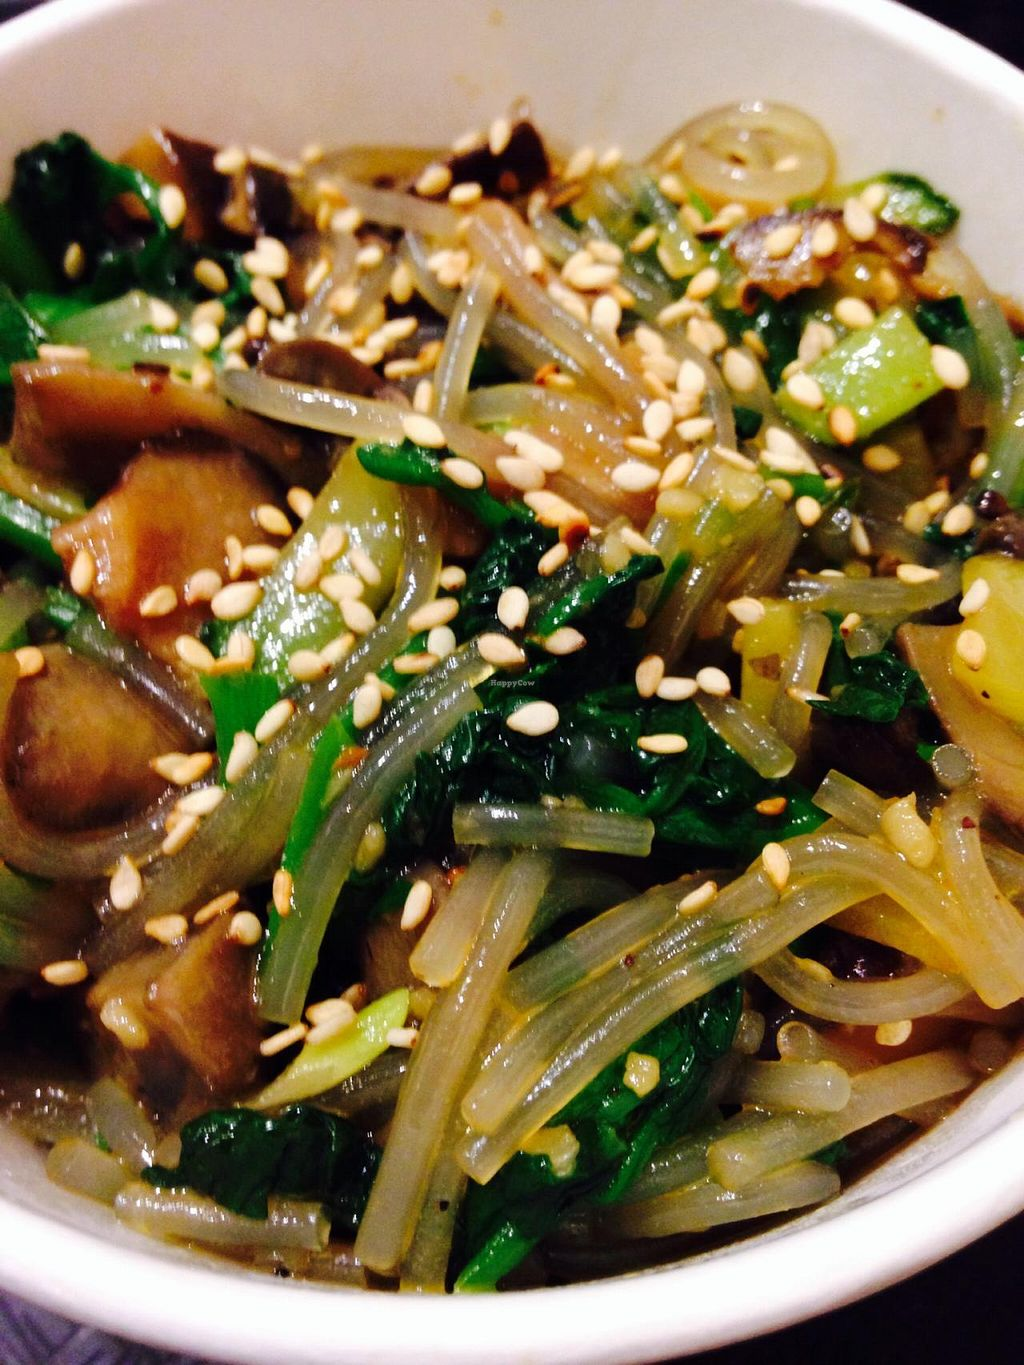 "Photo of Triple B Fresh  by <a href=""/members/profile/cookiem"">cookiem</a> <br/>Small japchae with plenty of veggies and mushrooms <br/> February 19, 2015  - <a href='/contact/abuse/image/51417/93530'>Report</a>"